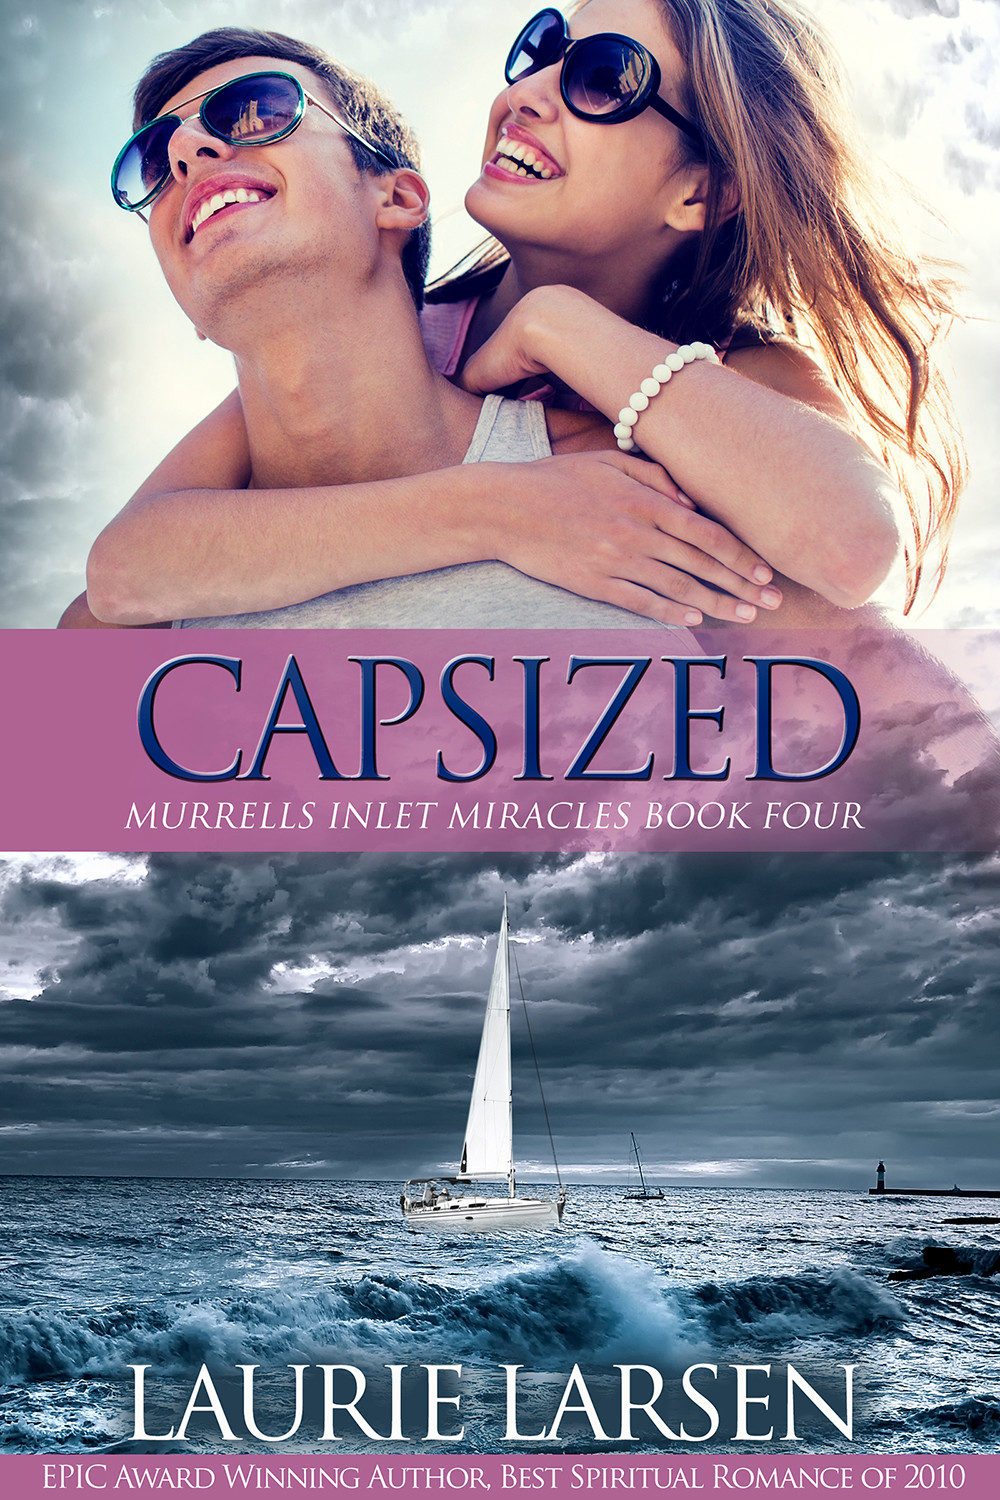 Capsized by Laurie Larsen